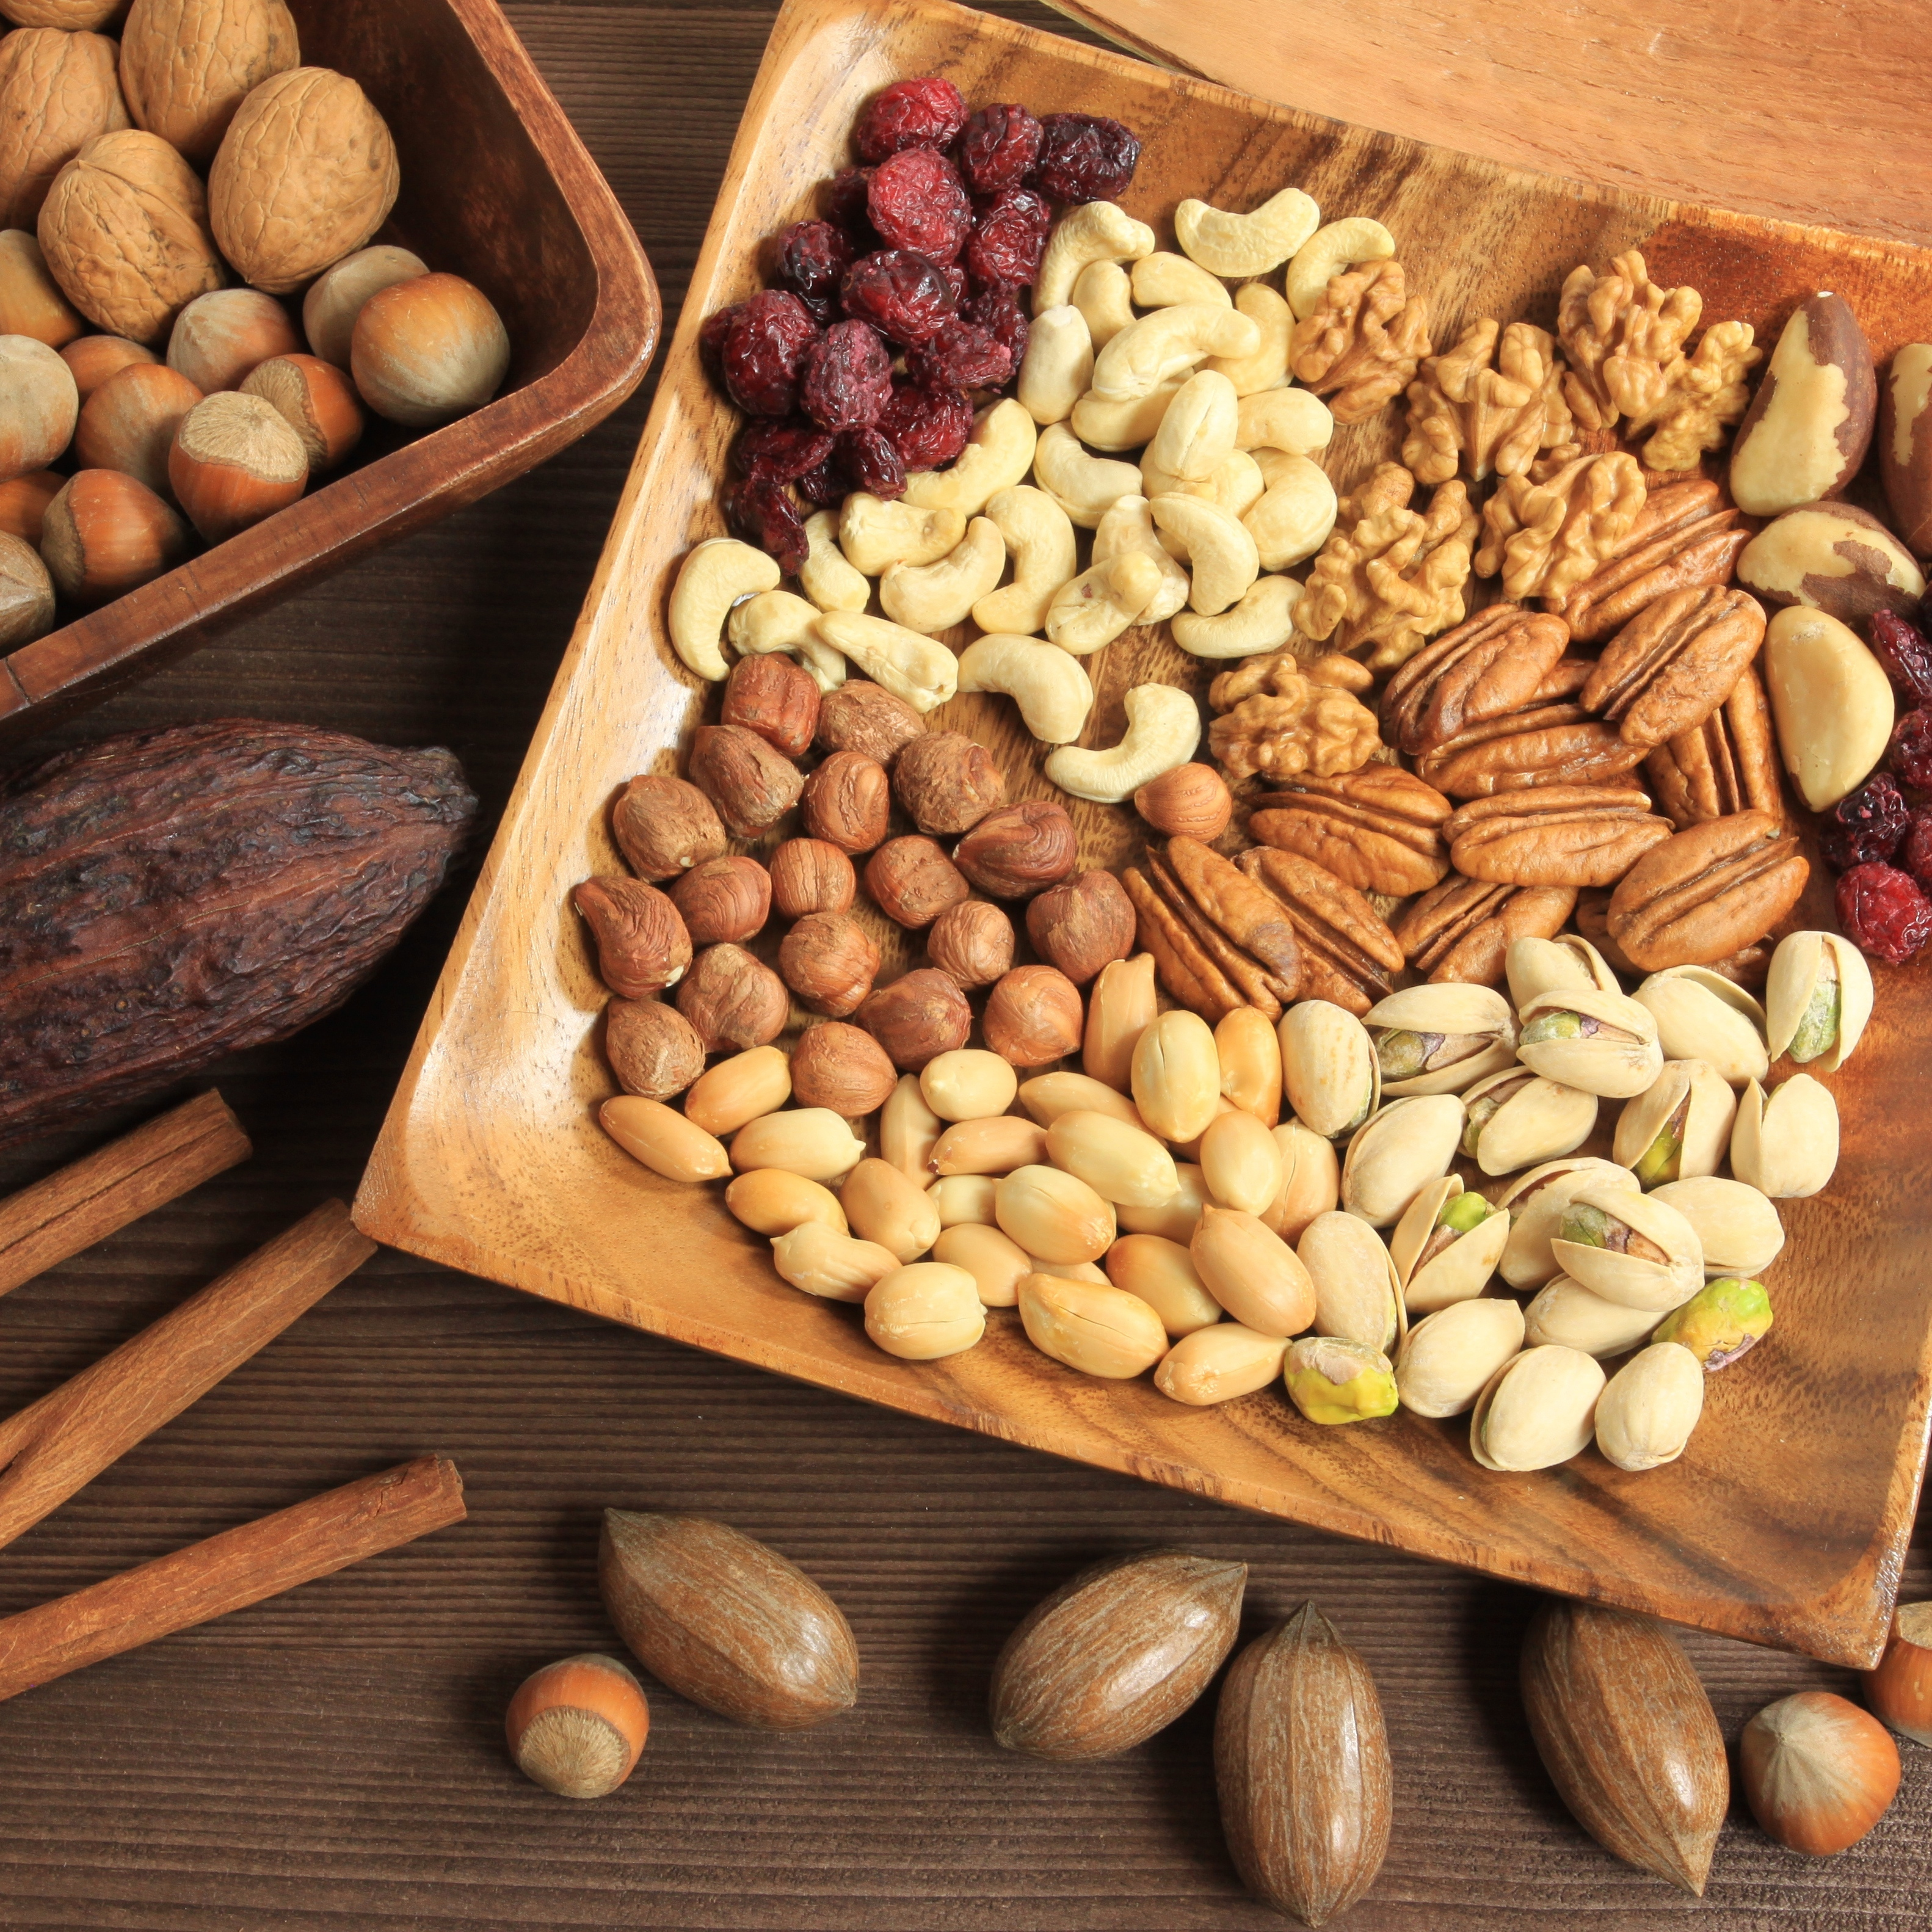 Peanut during pregnancy: benefit and harm